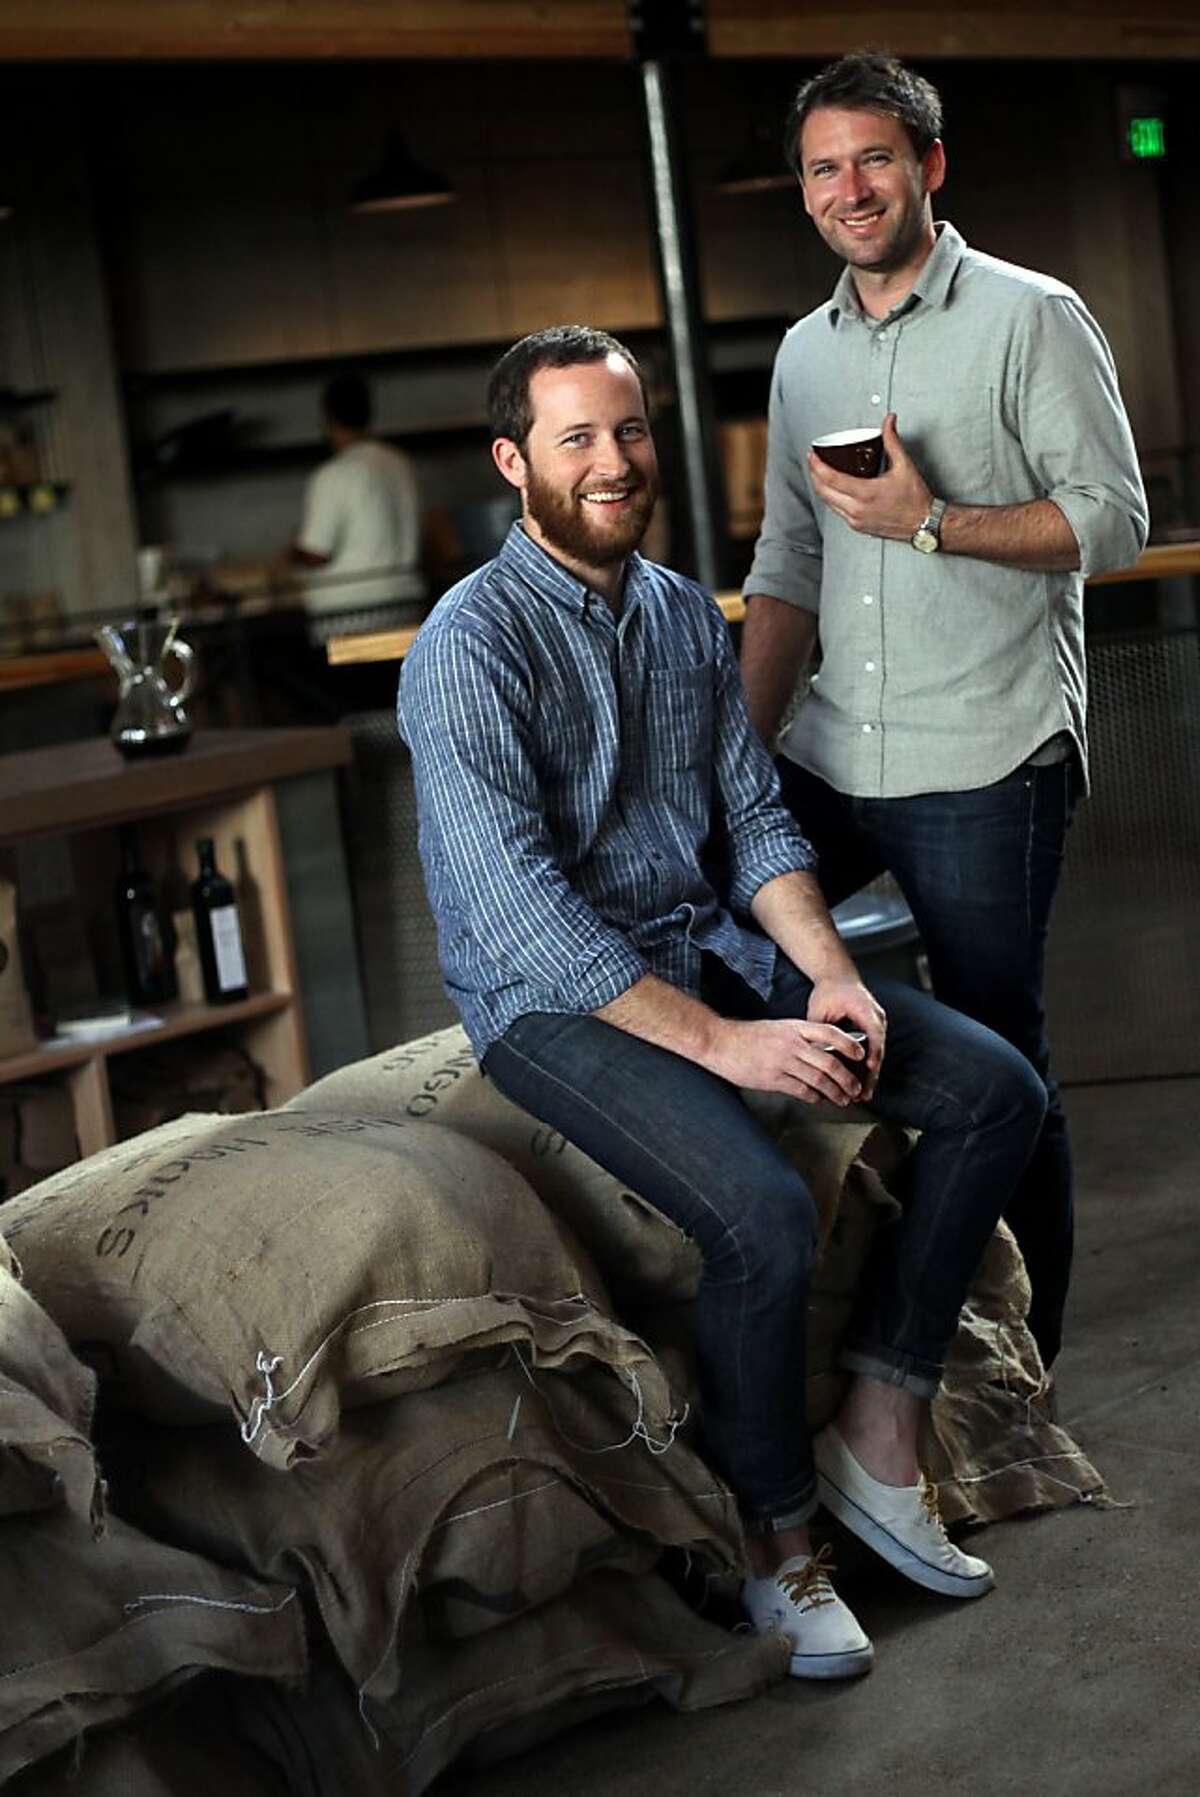 Brothers and Sightglass co-owners, Justin and Jerad Morrison, inside the Coffee Bar and Roastery on Seventh Street in San Francisco, CA on November 1, 2011.